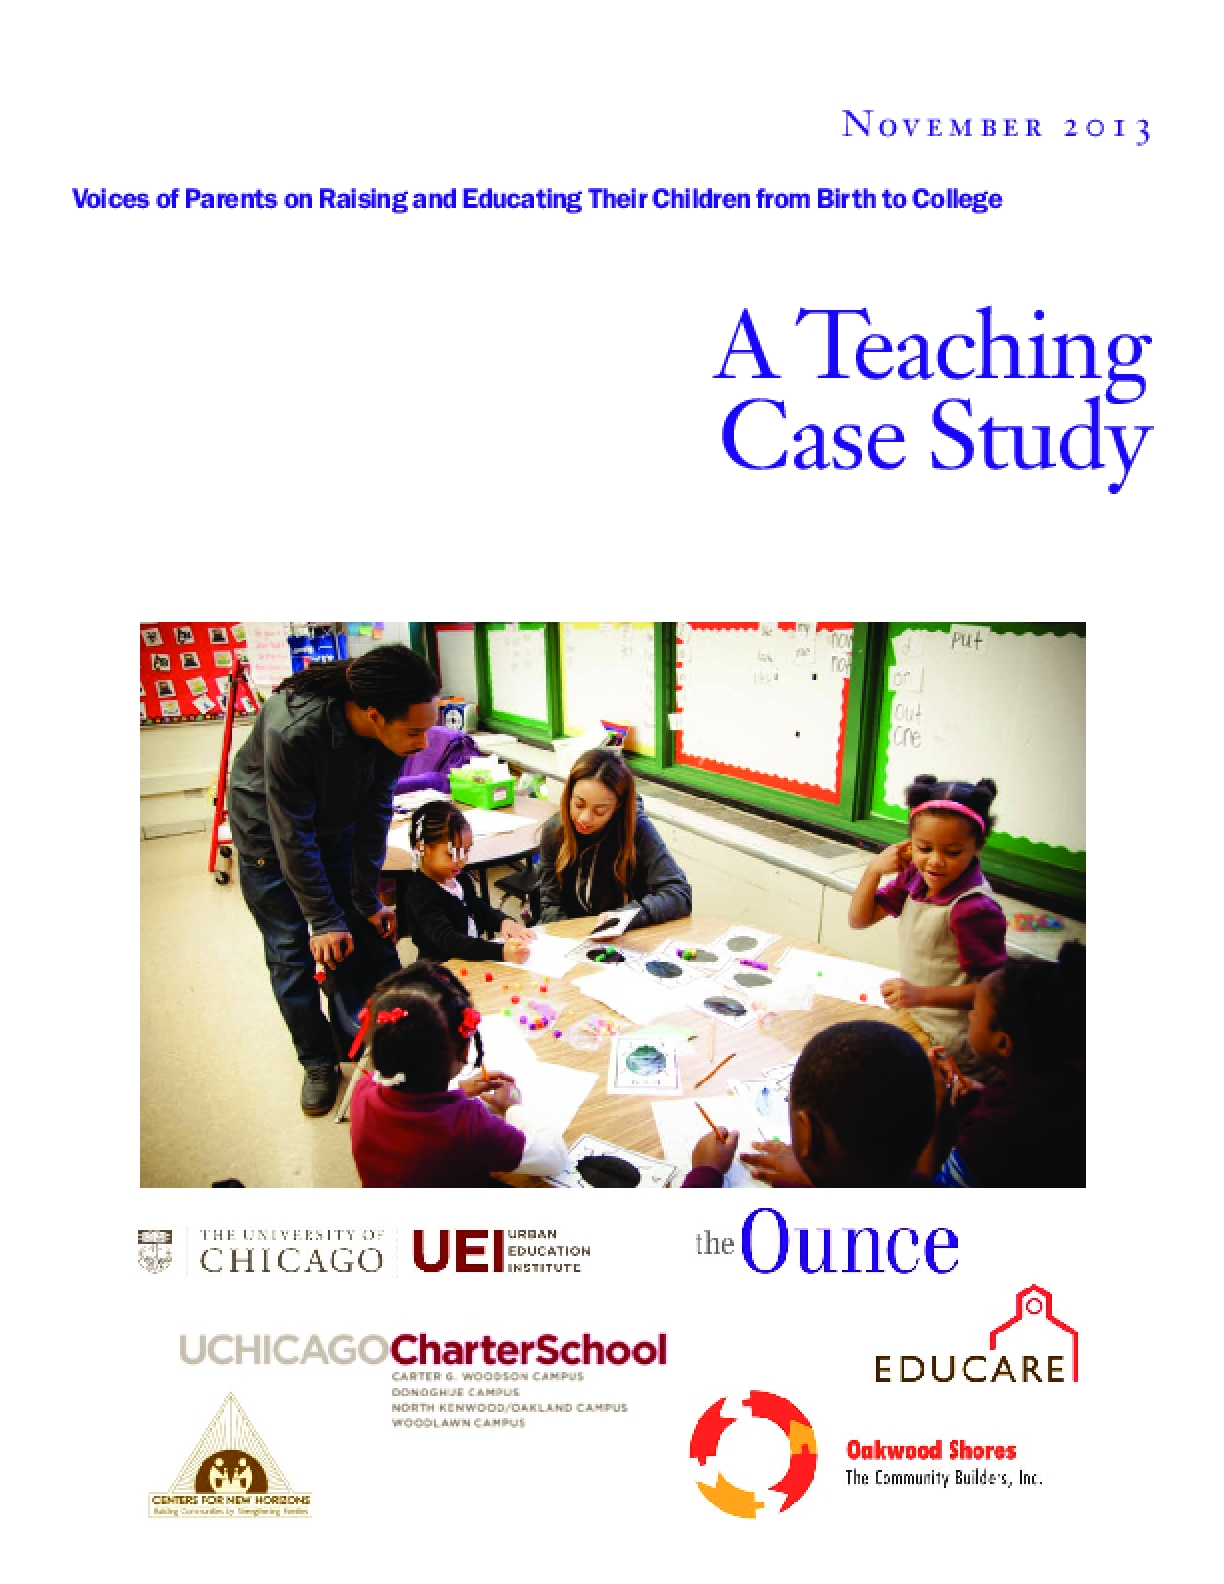 Voices of Parents on Raising and Educating Their Children from Birth to College: A Teaching Case Study